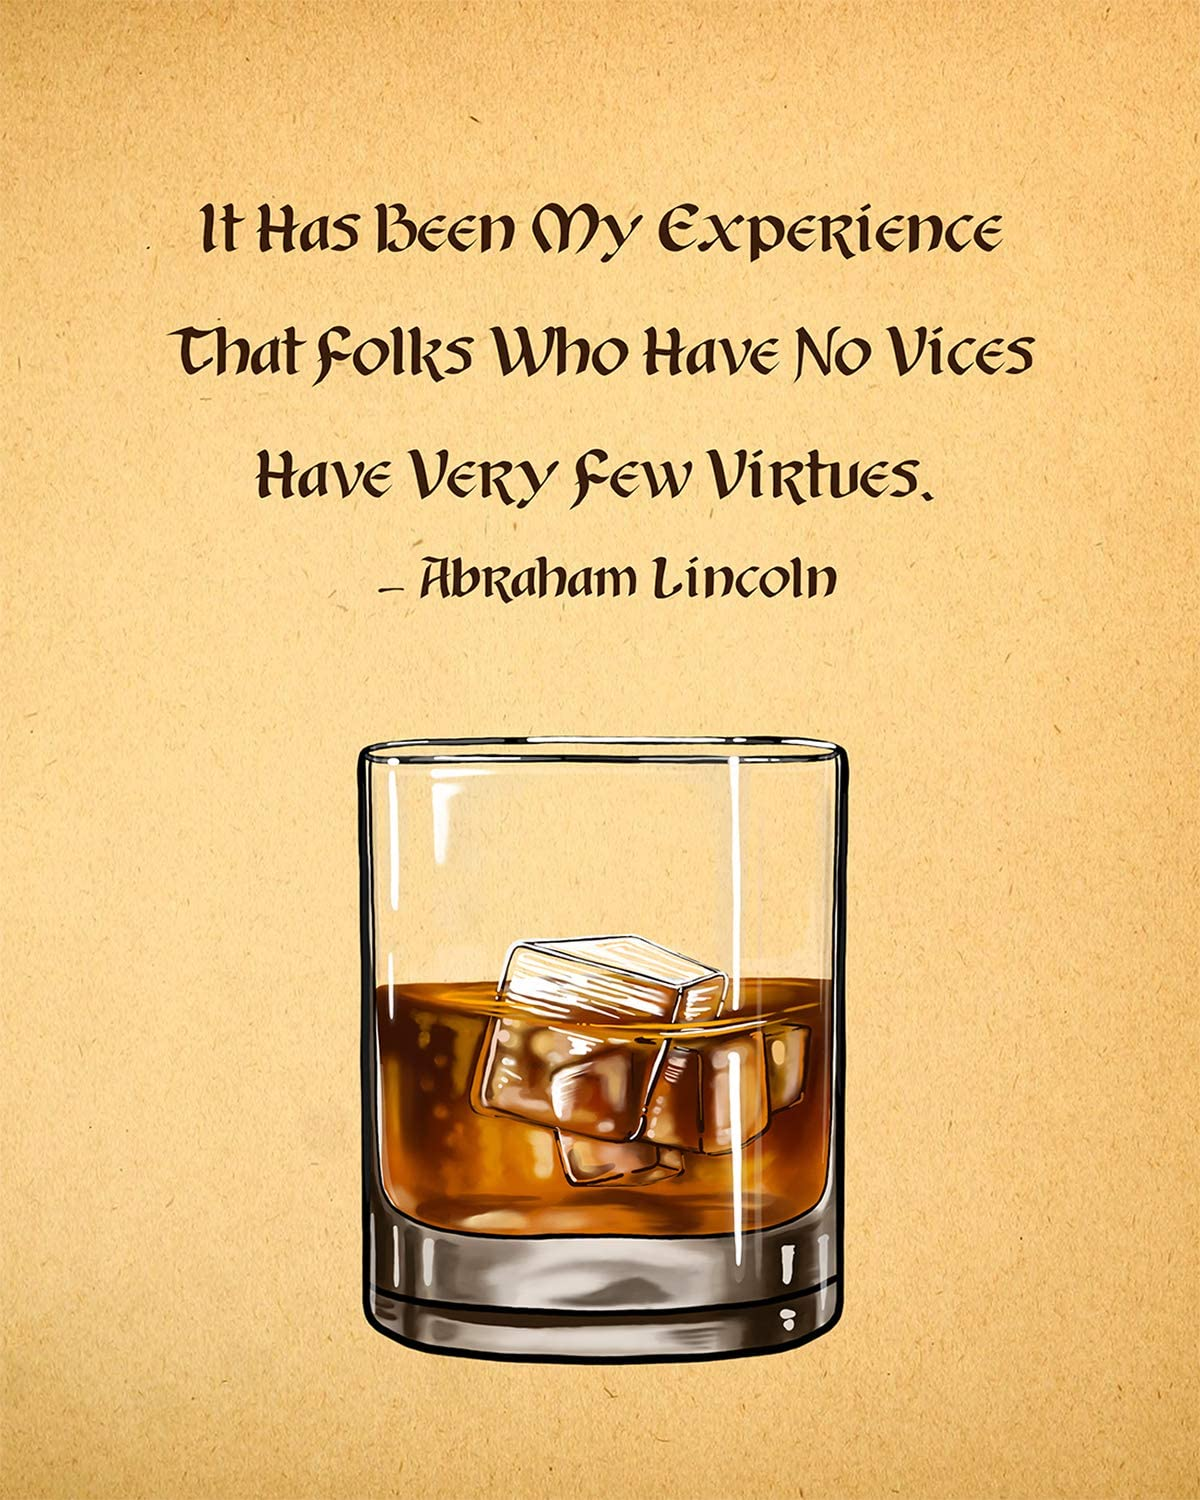 Folks Who Have No Vices Have Very Few Virtues (A. Lincoln) - Wall Decor Art Print - 8x10 unframed print on a beige background - Great gift for wine and liquor enthusiasts